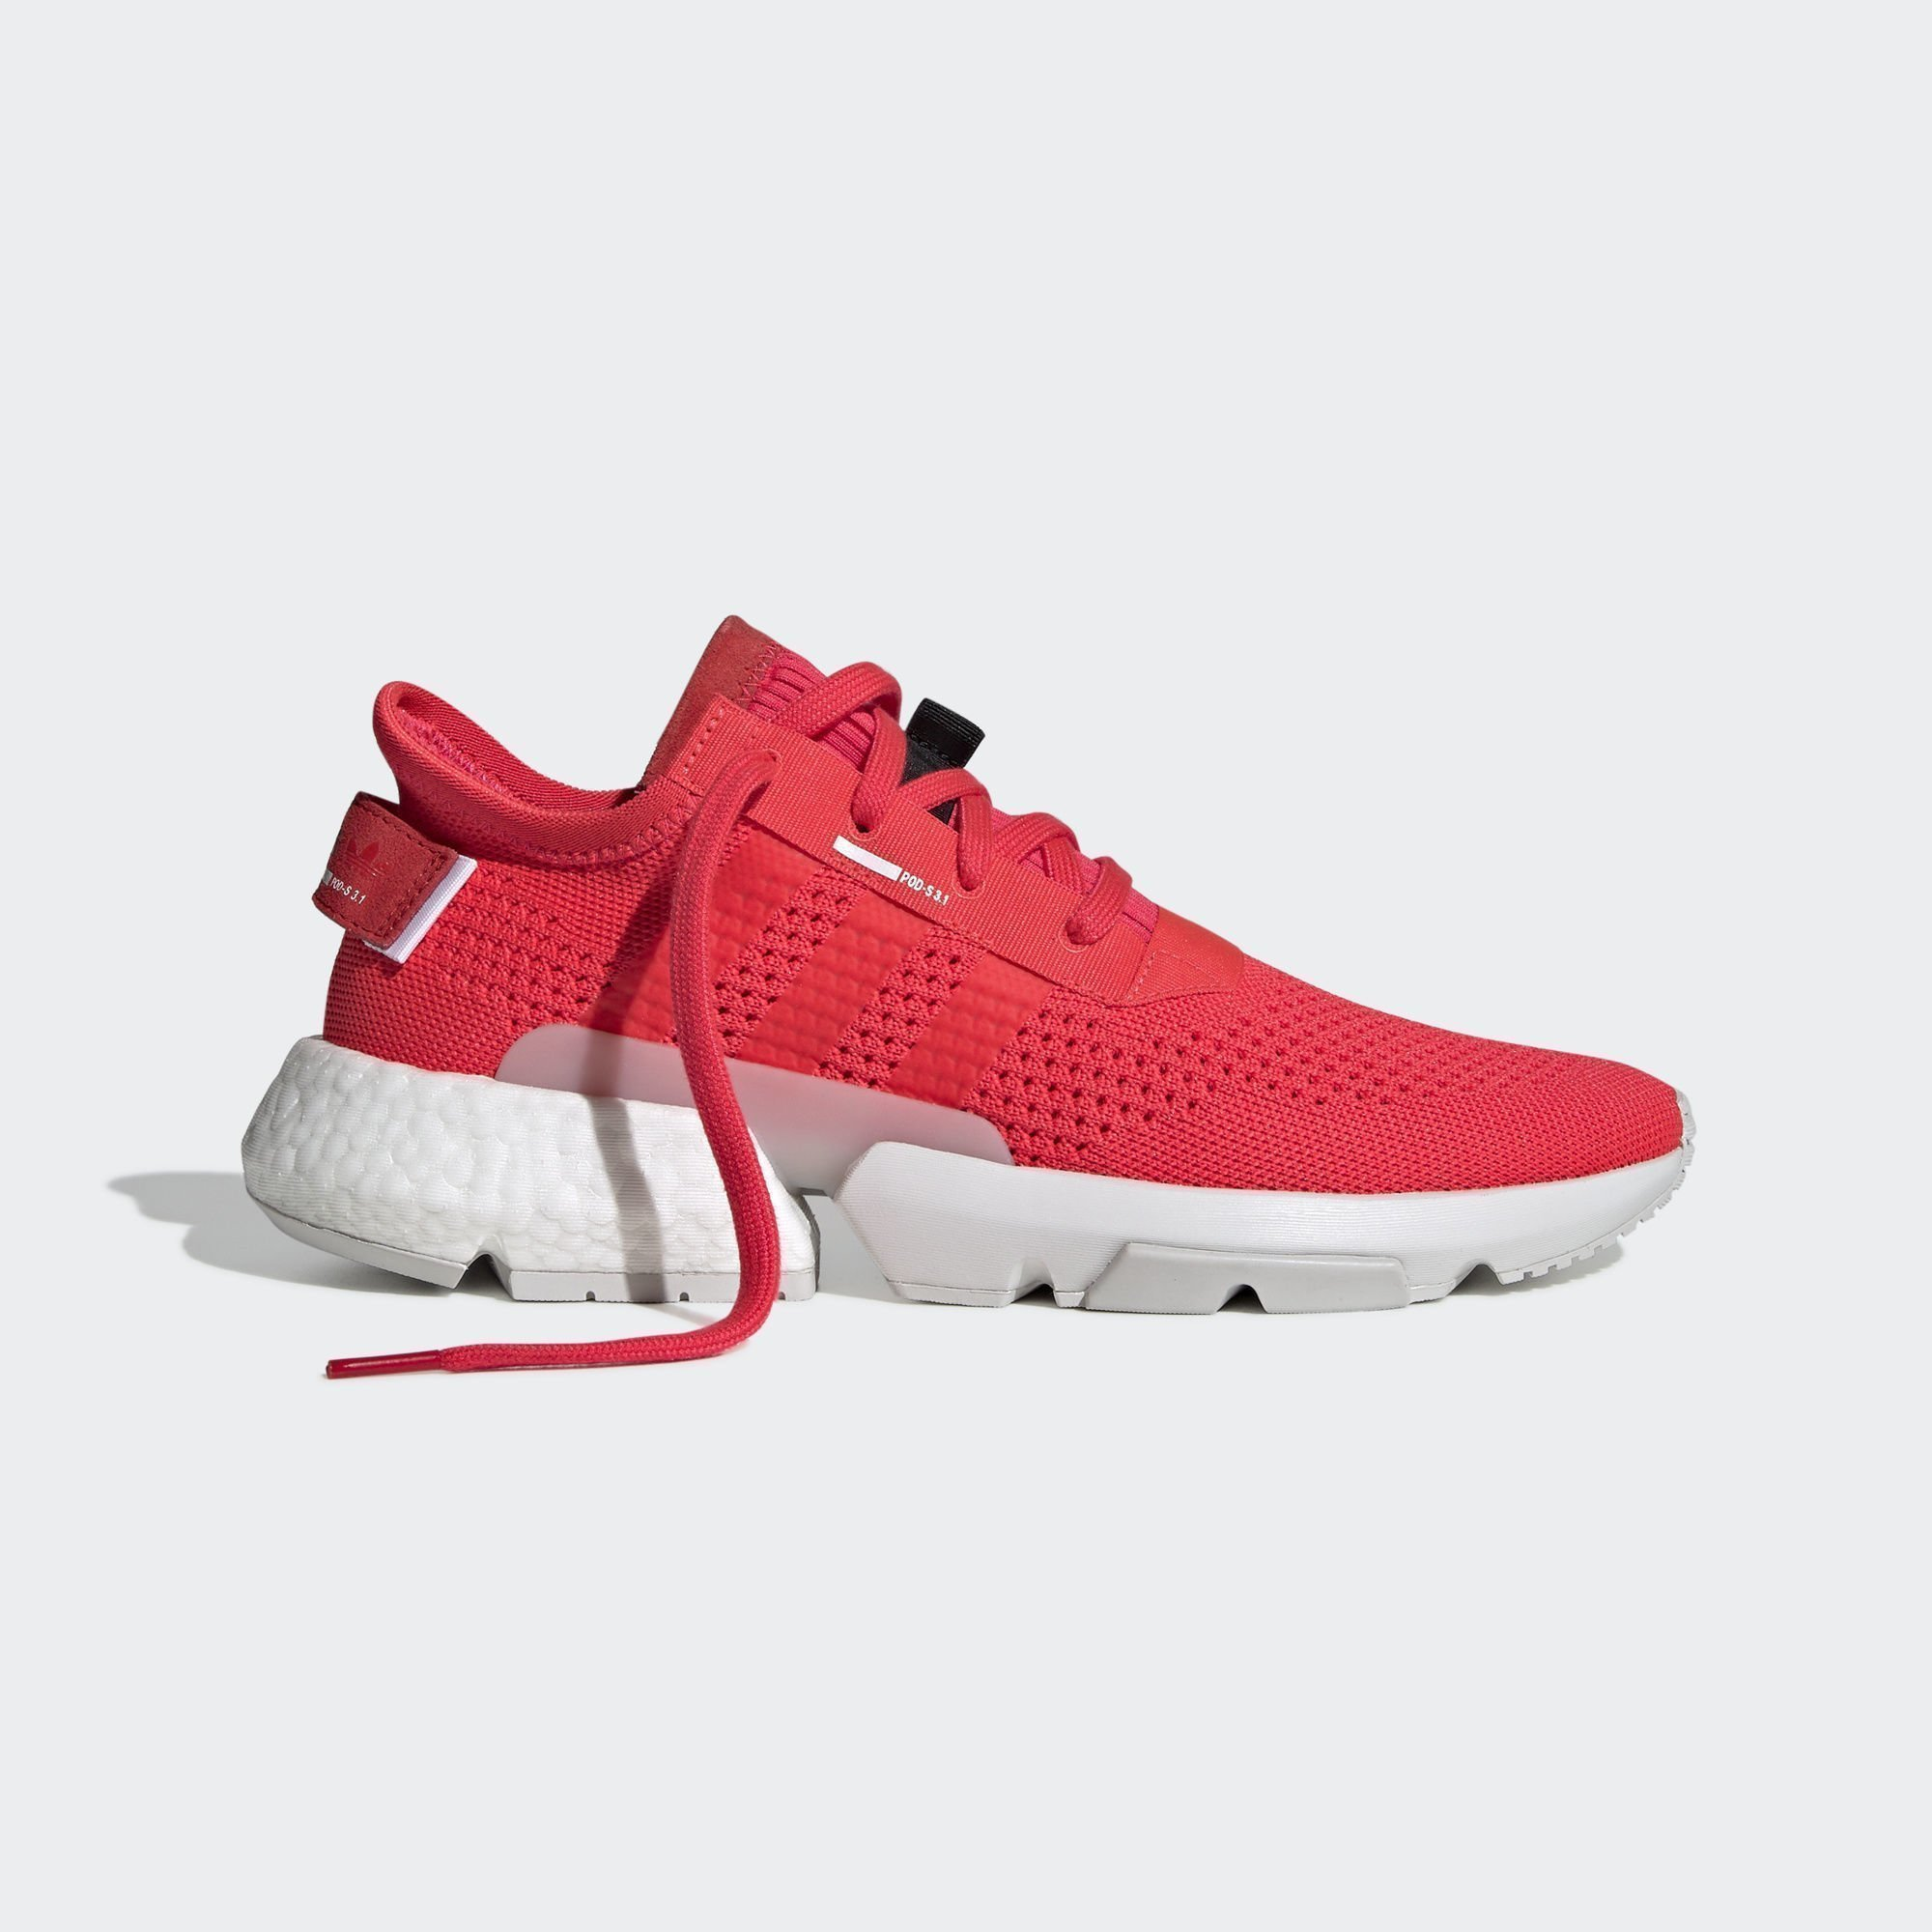 Adidas POD S3.1 Shock Red Shock Red Ftwr White (CG7126)